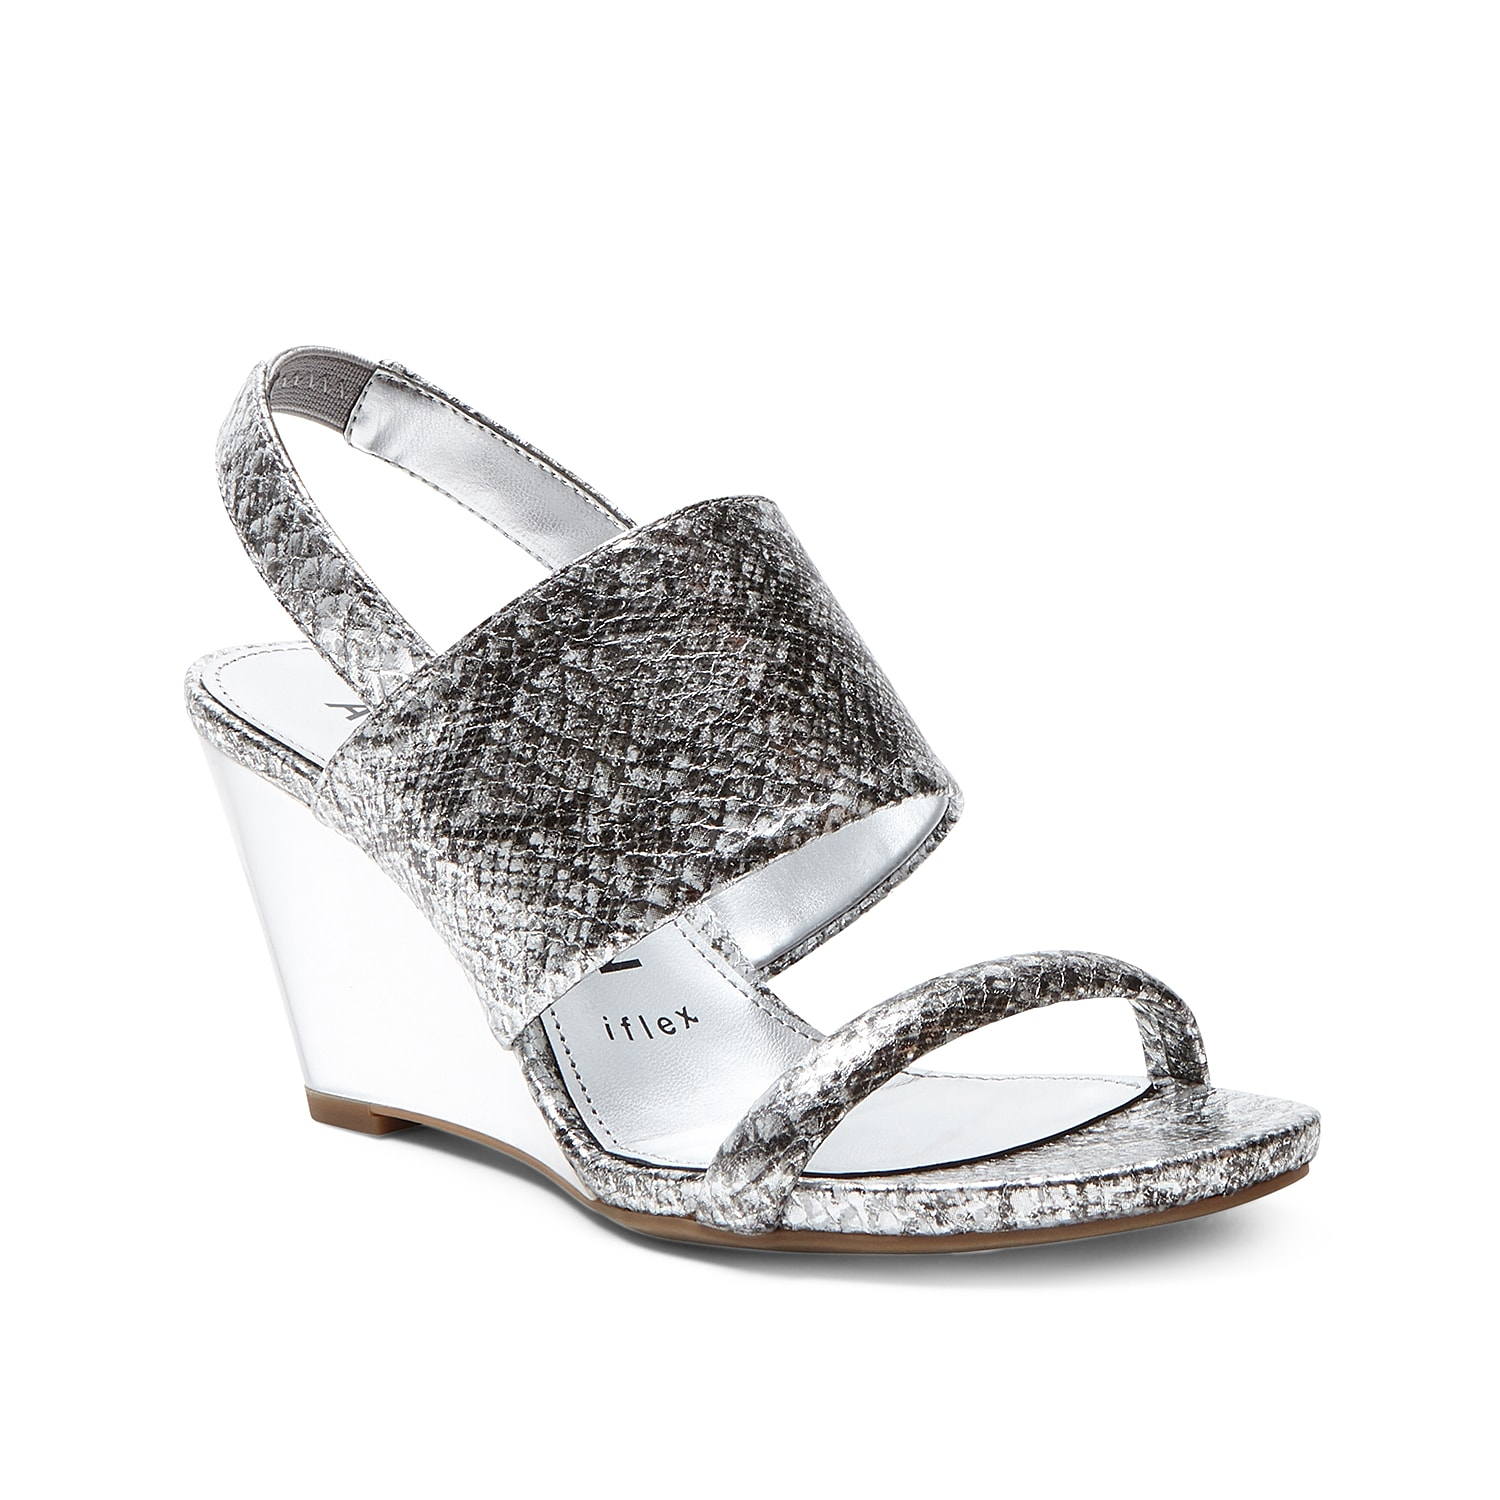 Complement your evening look with the Gently wedge sandal by Anne Klien. The Iflex technology offers up to 90-degree flexibility for all-day comfort, while the lucite wedge heel offers a fashionable lift.